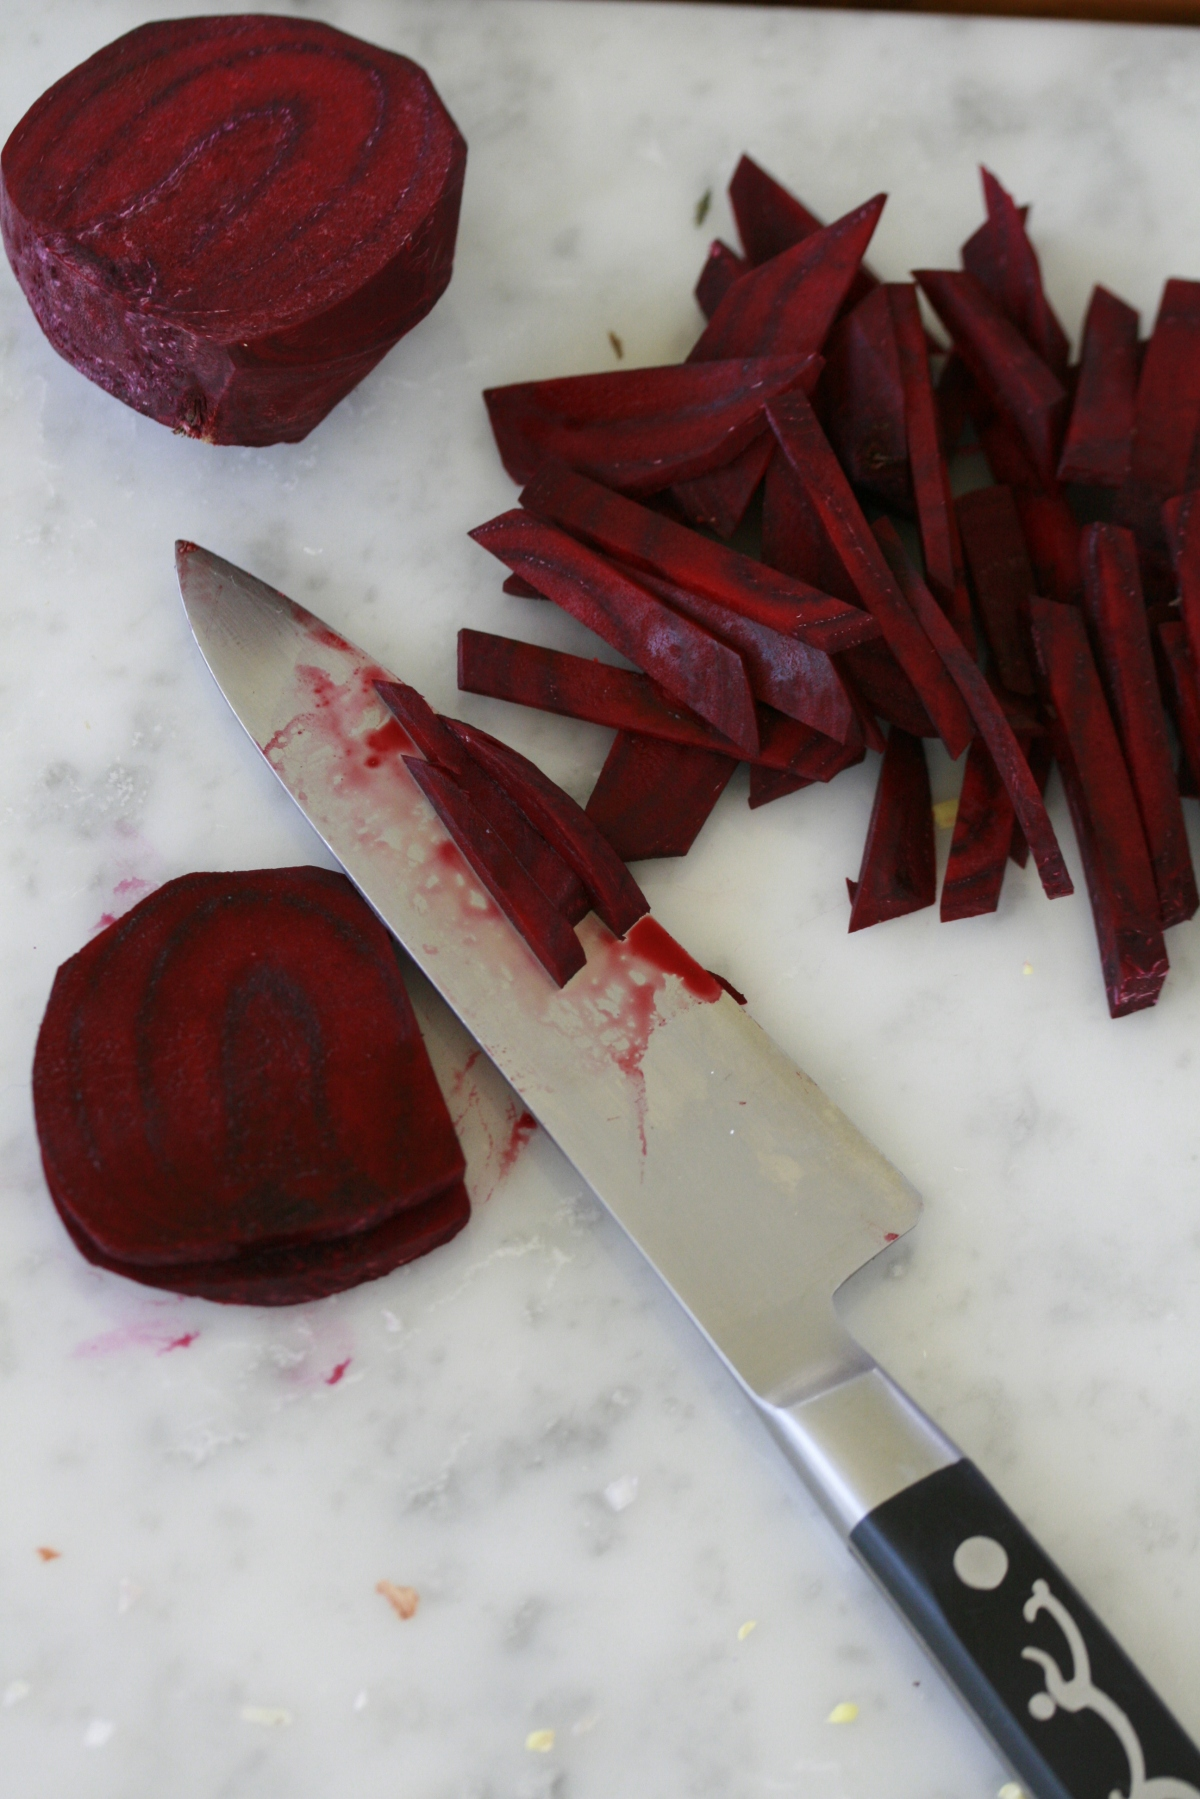 Fresh Beetroot, peeled and cut into matchsticks